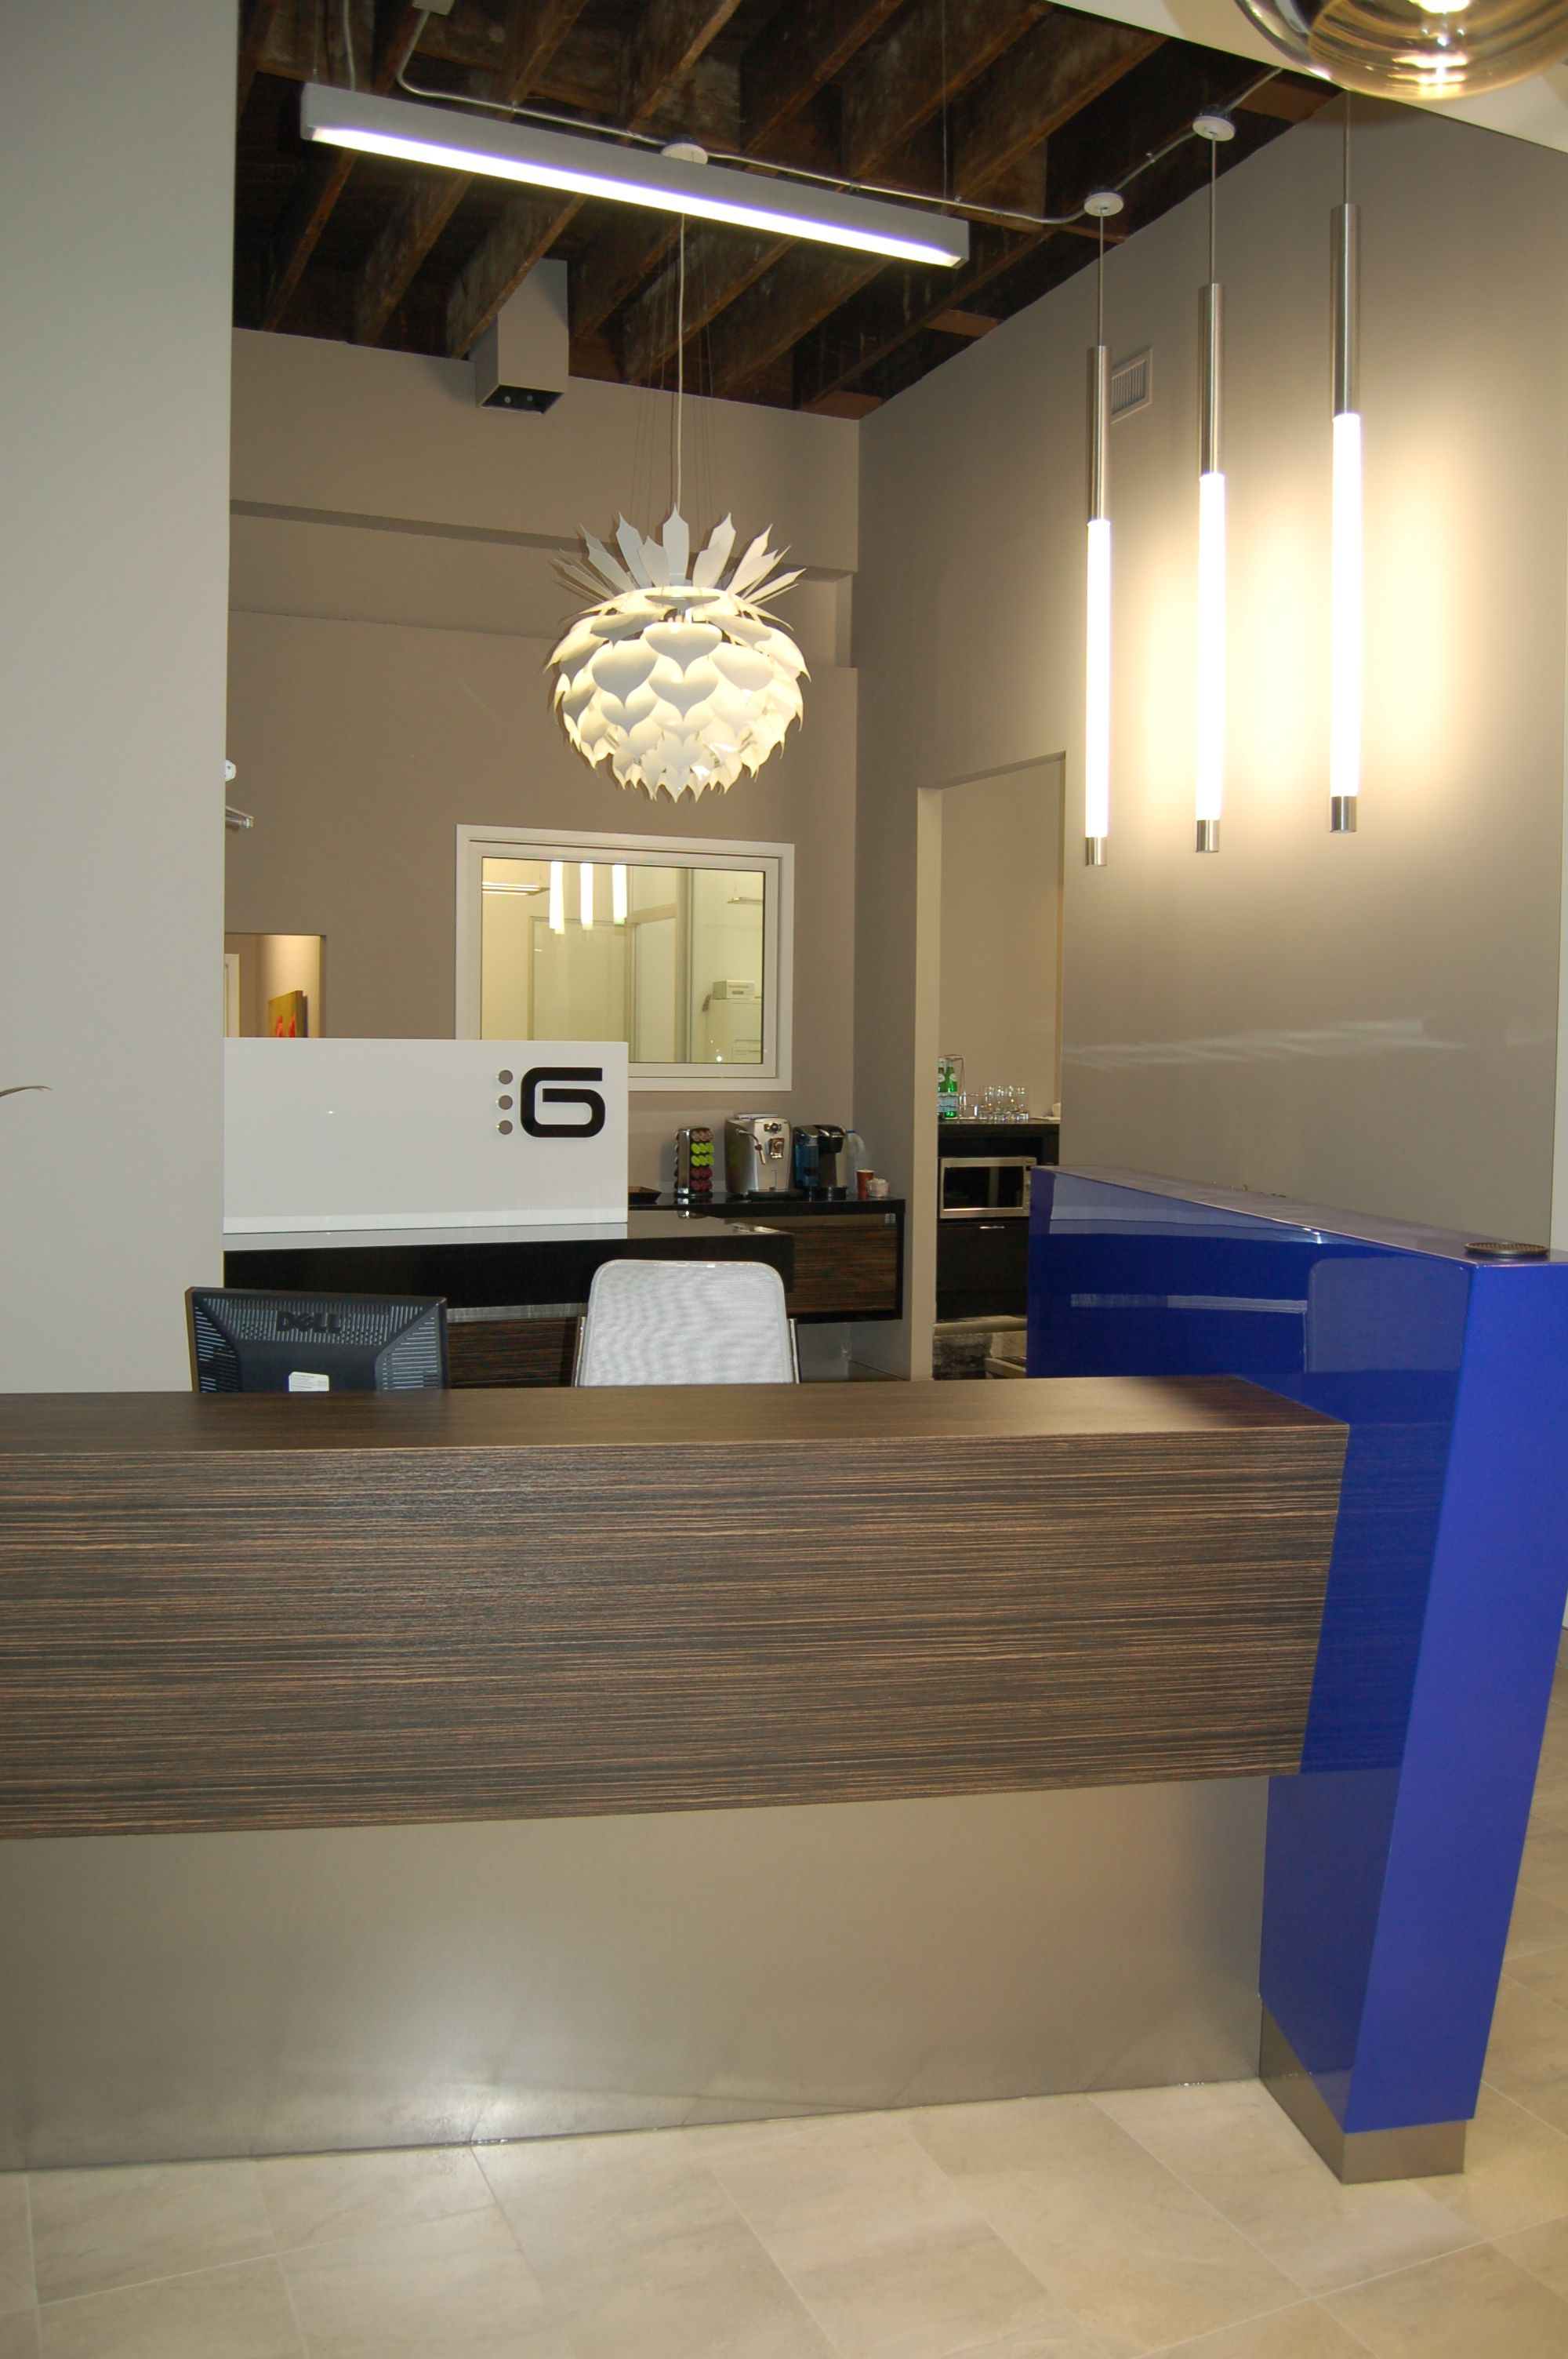 Spi Lighting Fixtures Aspen And Pavo In Office Lobby Image